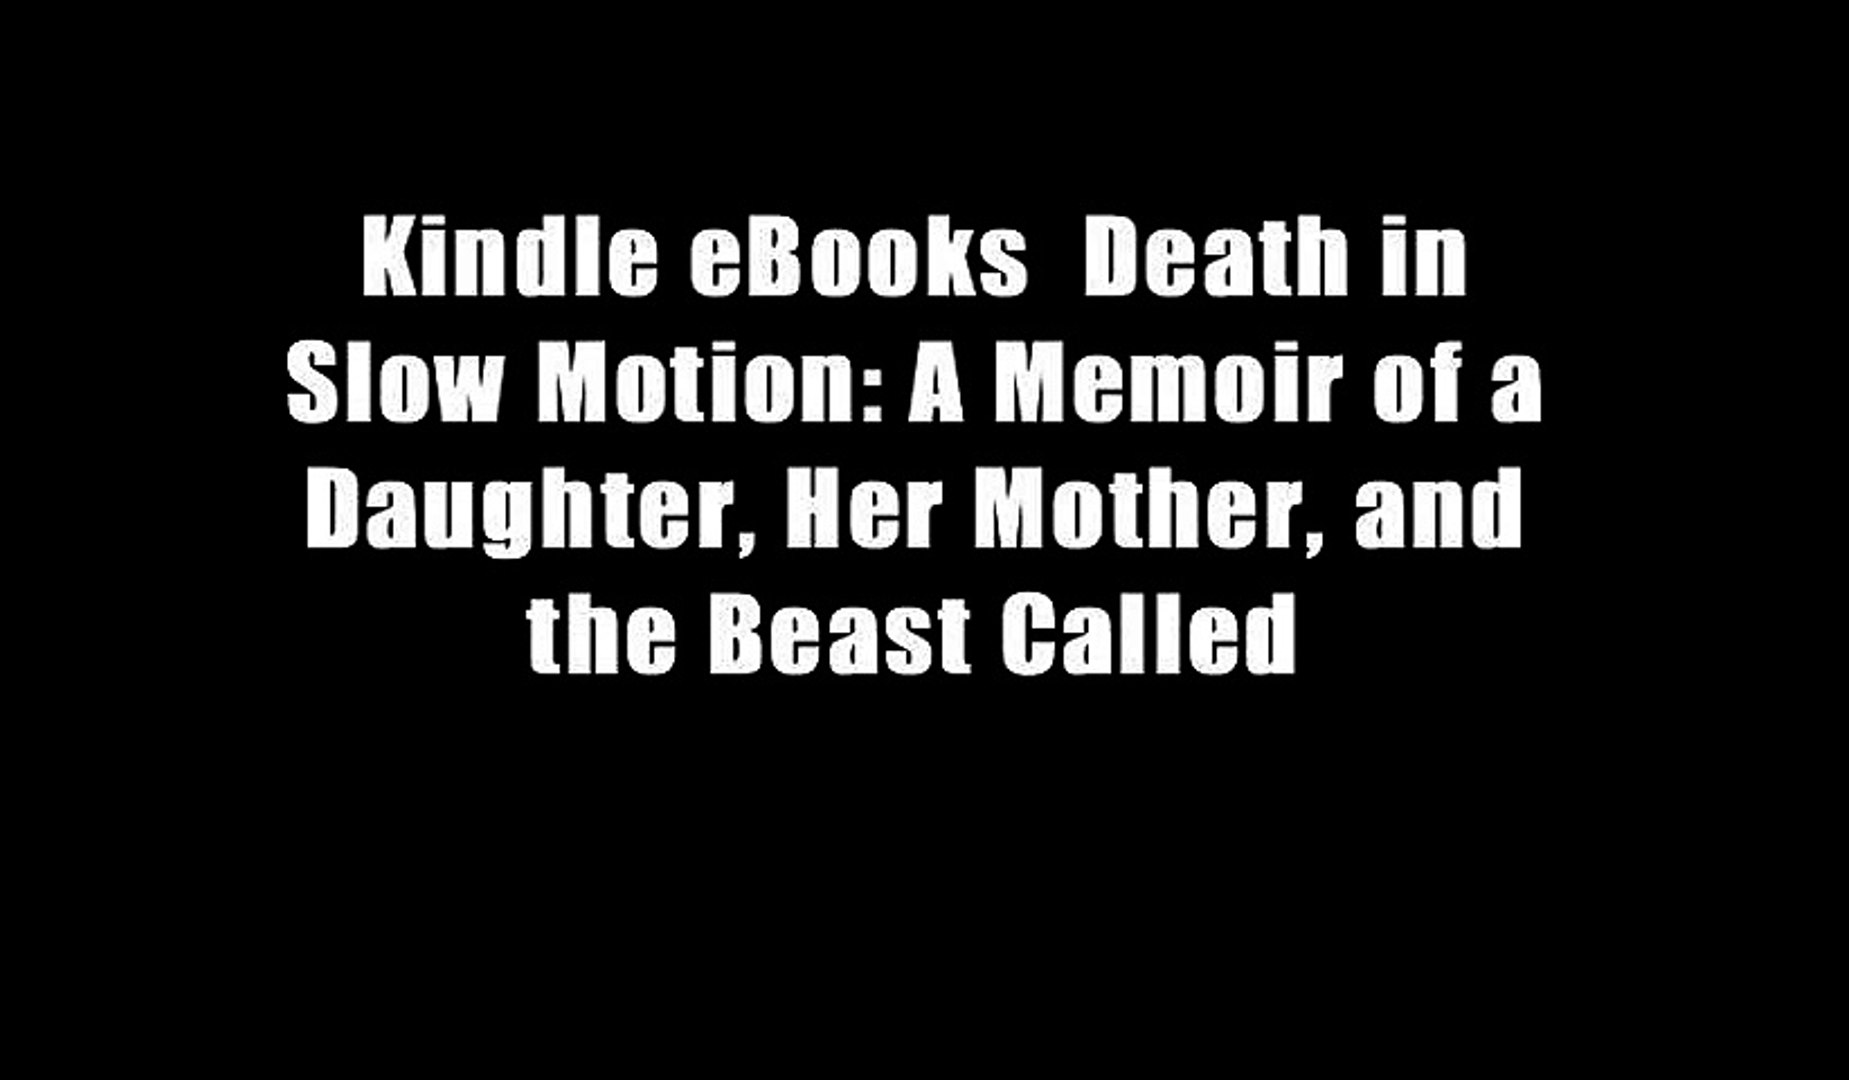 Kindle eBooks  Death in Slow Motion: A Memoir of a Daughter, Her Mother, and the Beast Called